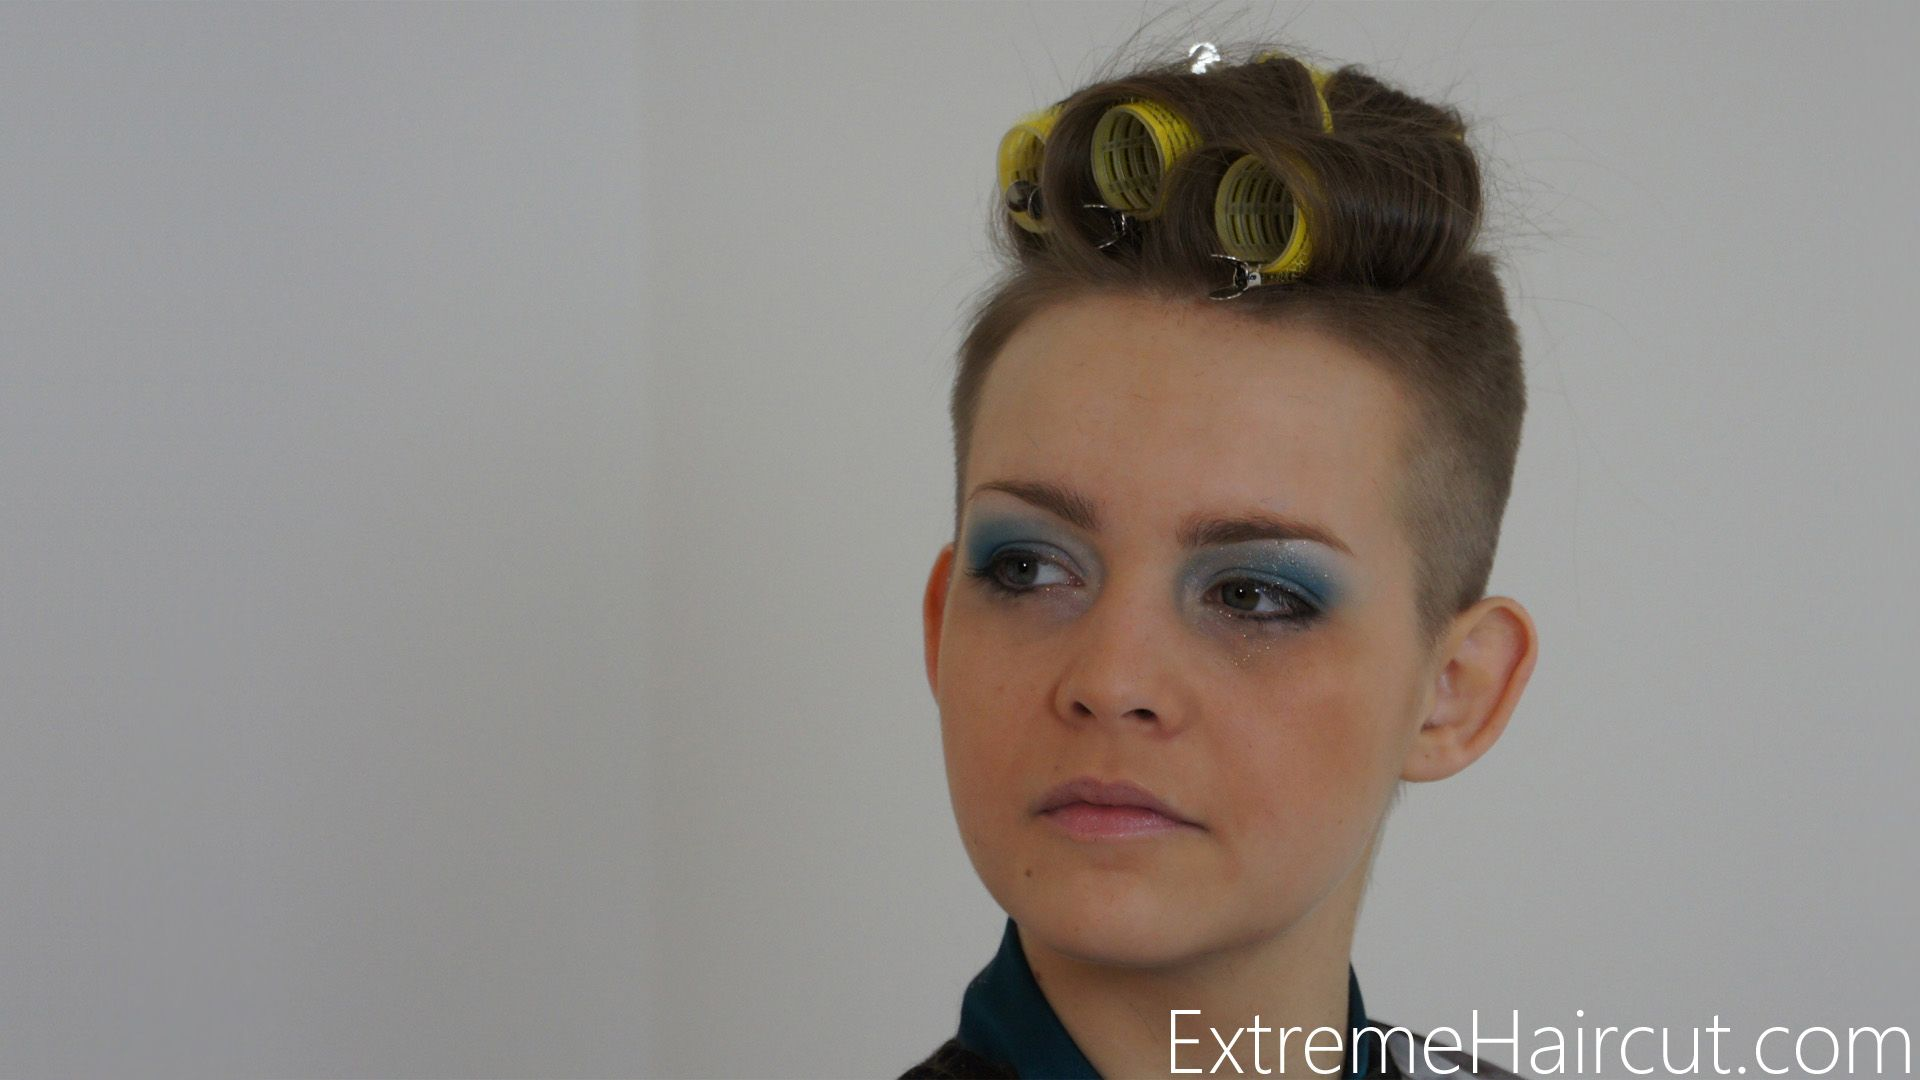 Extremehaircut Model Feel Free To Share It Here Or Anywhere But